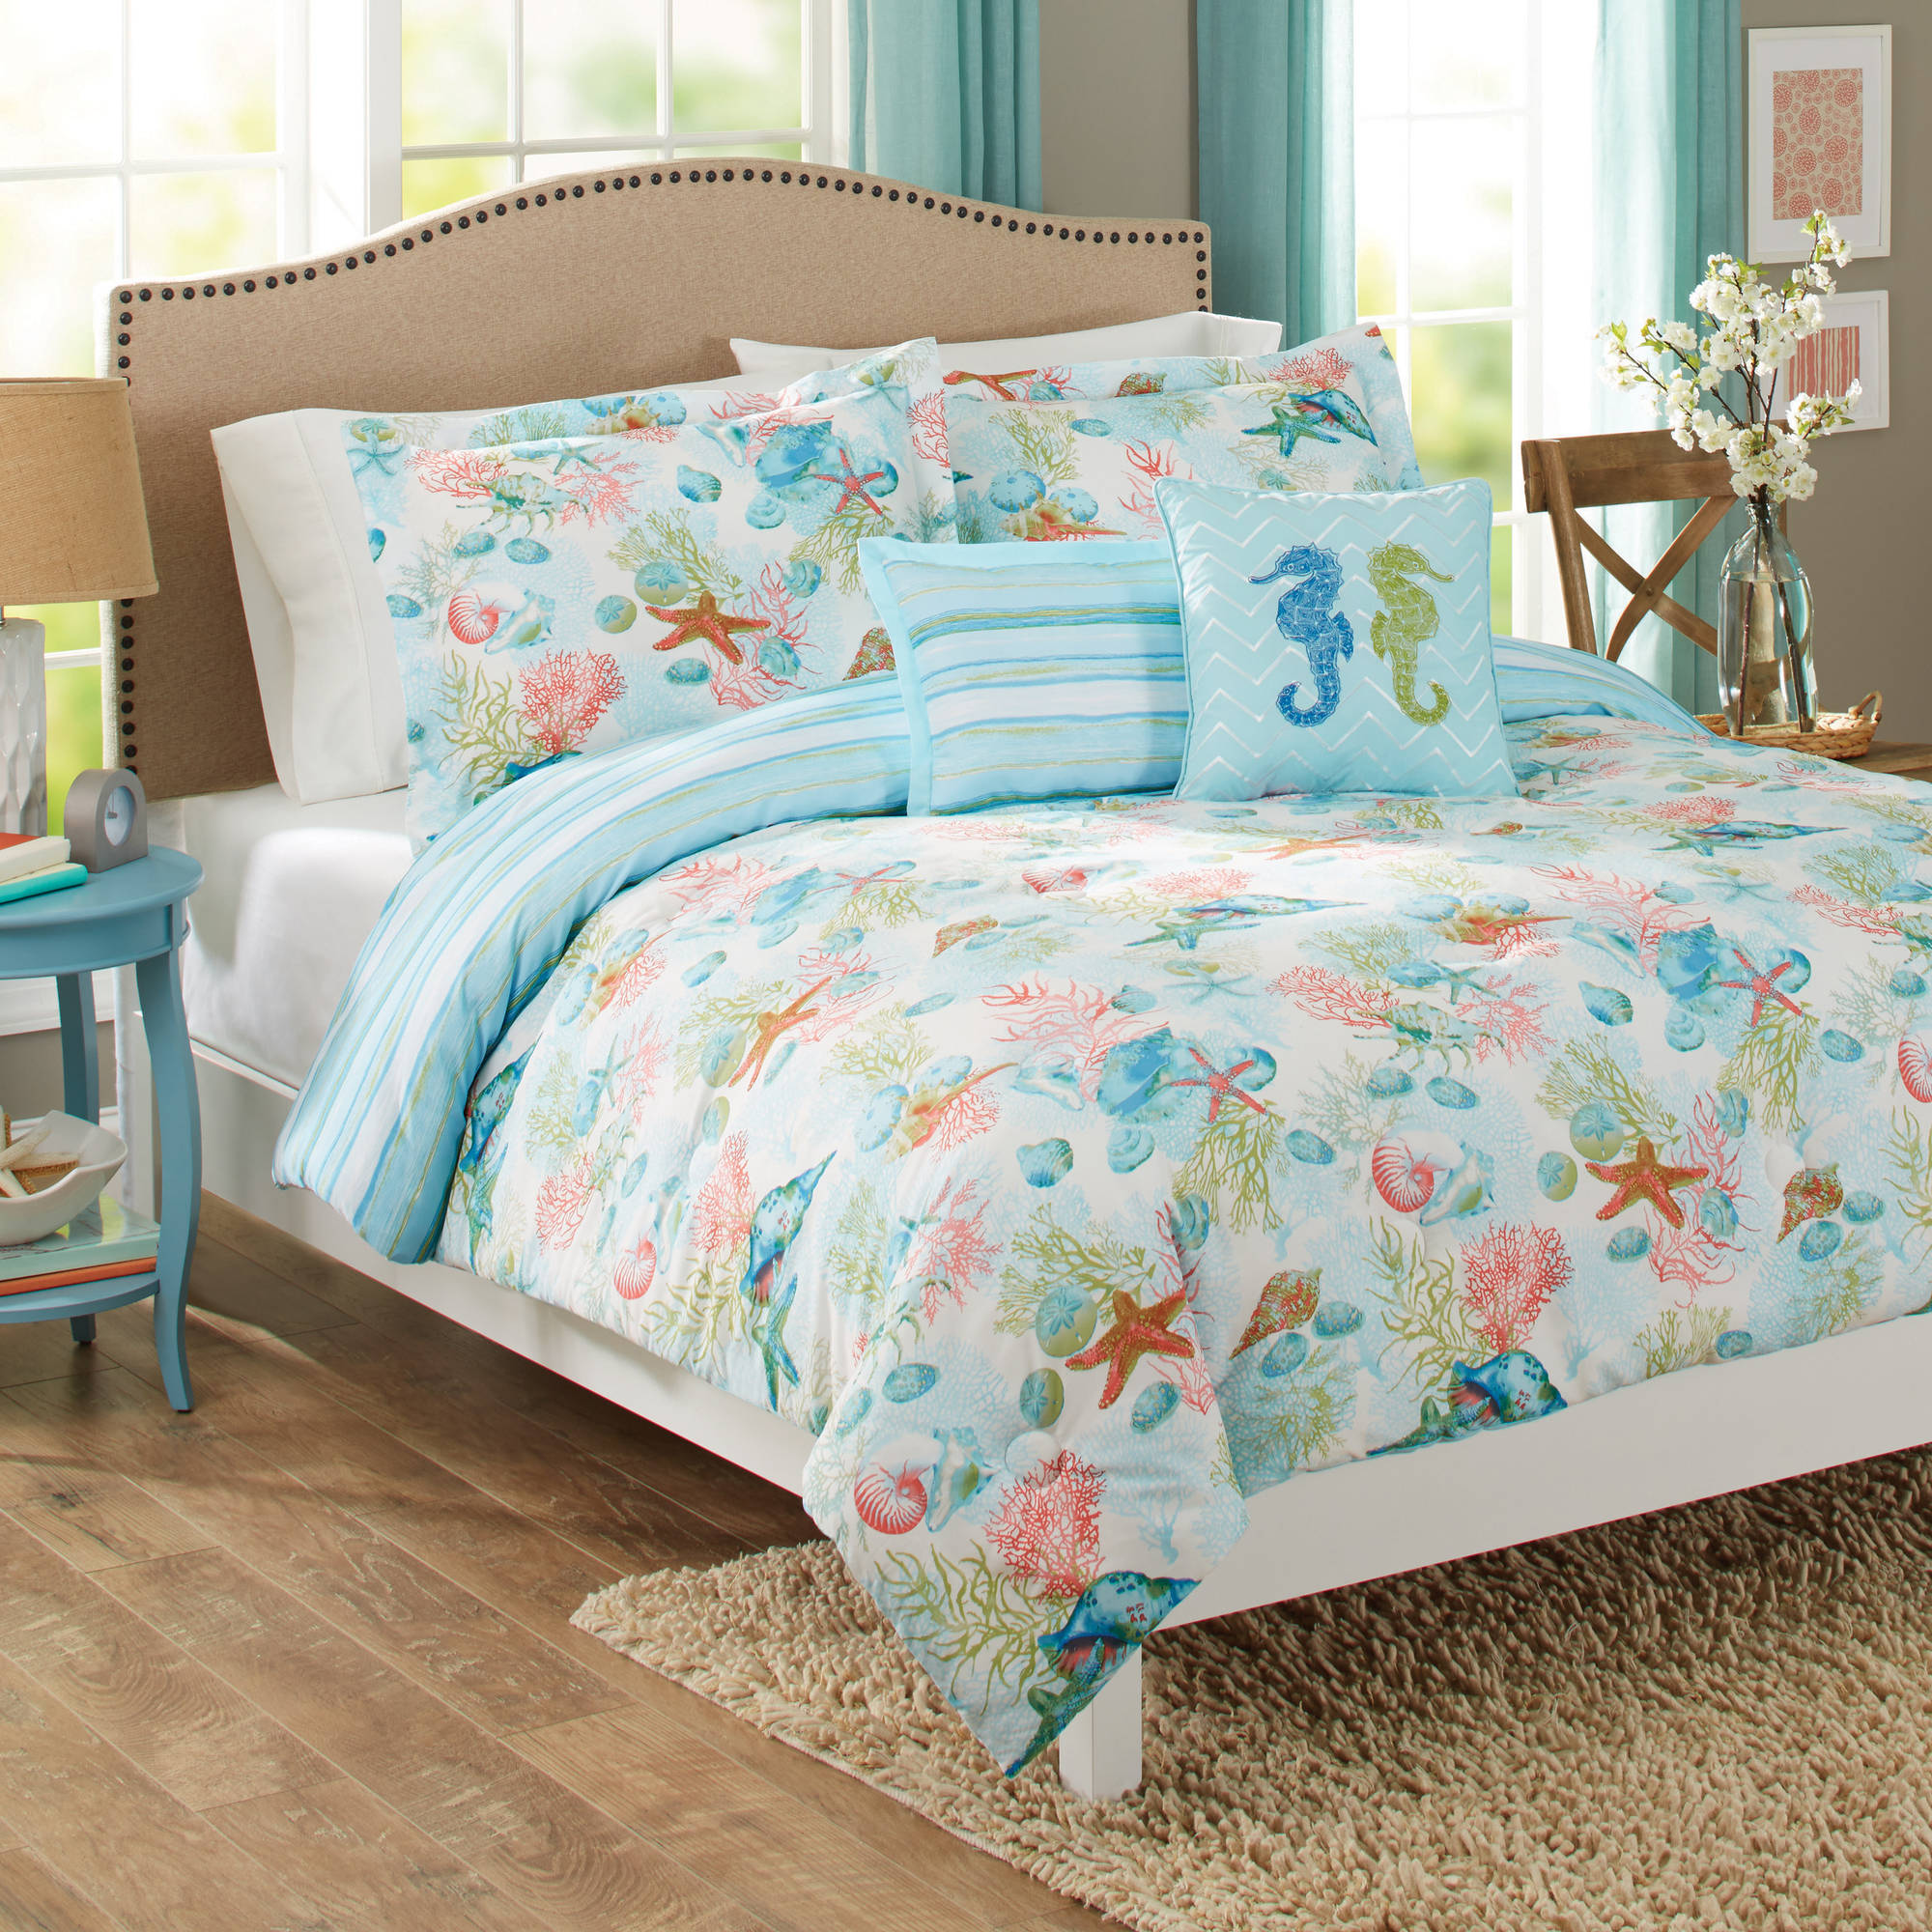 Brazilian embroidery bedspread designs - Better Homes And Gardens Beach Day 5 Piece Comforter Set Peach Walmart Com